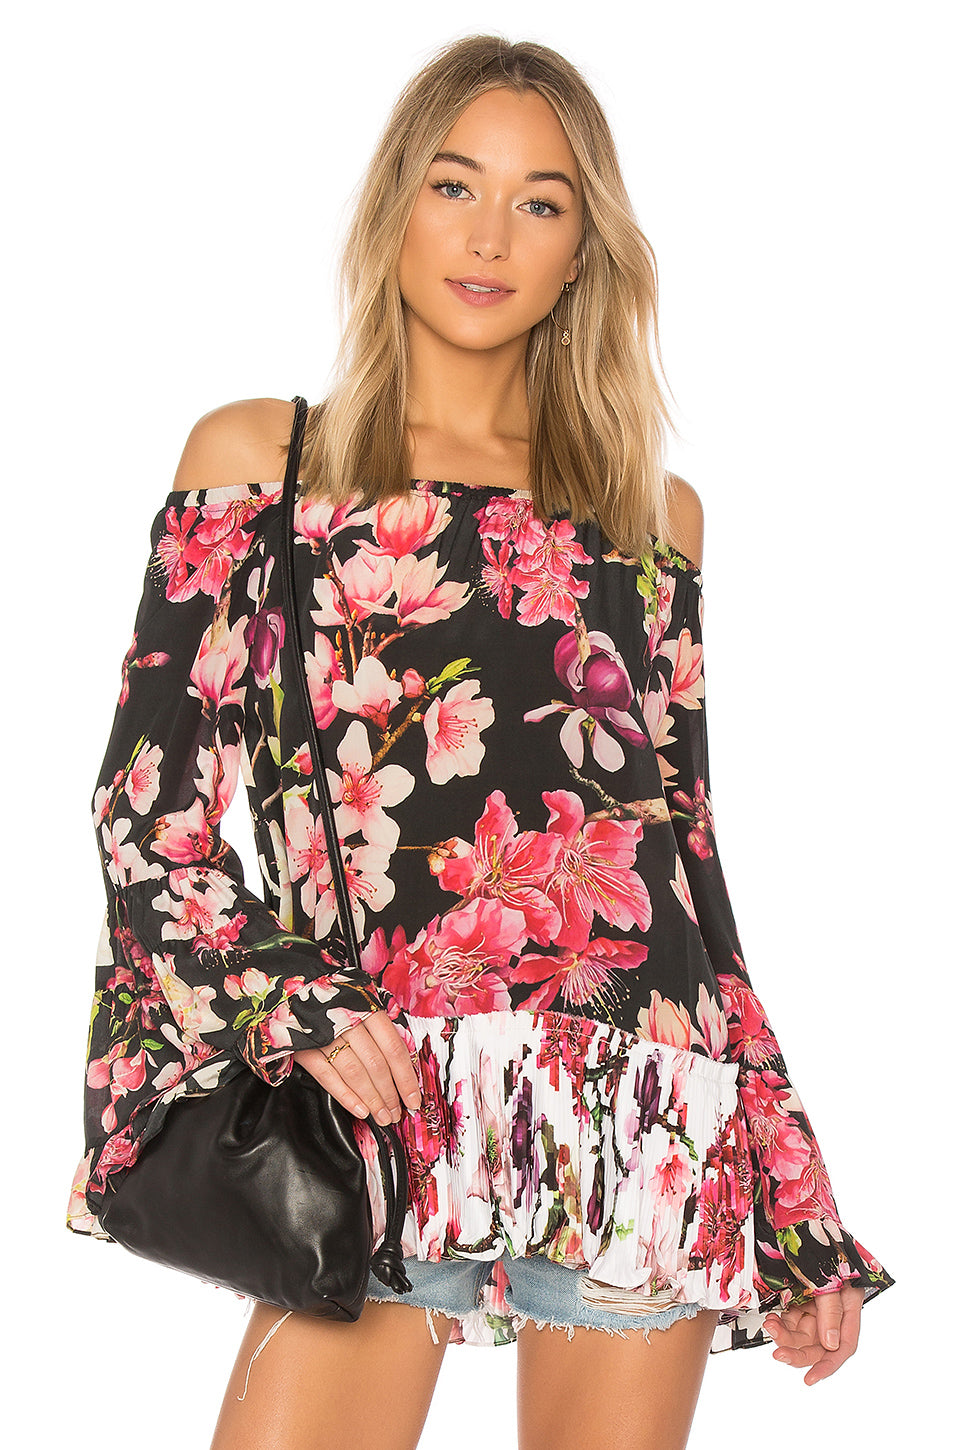 Amour Bell Sleeve Top